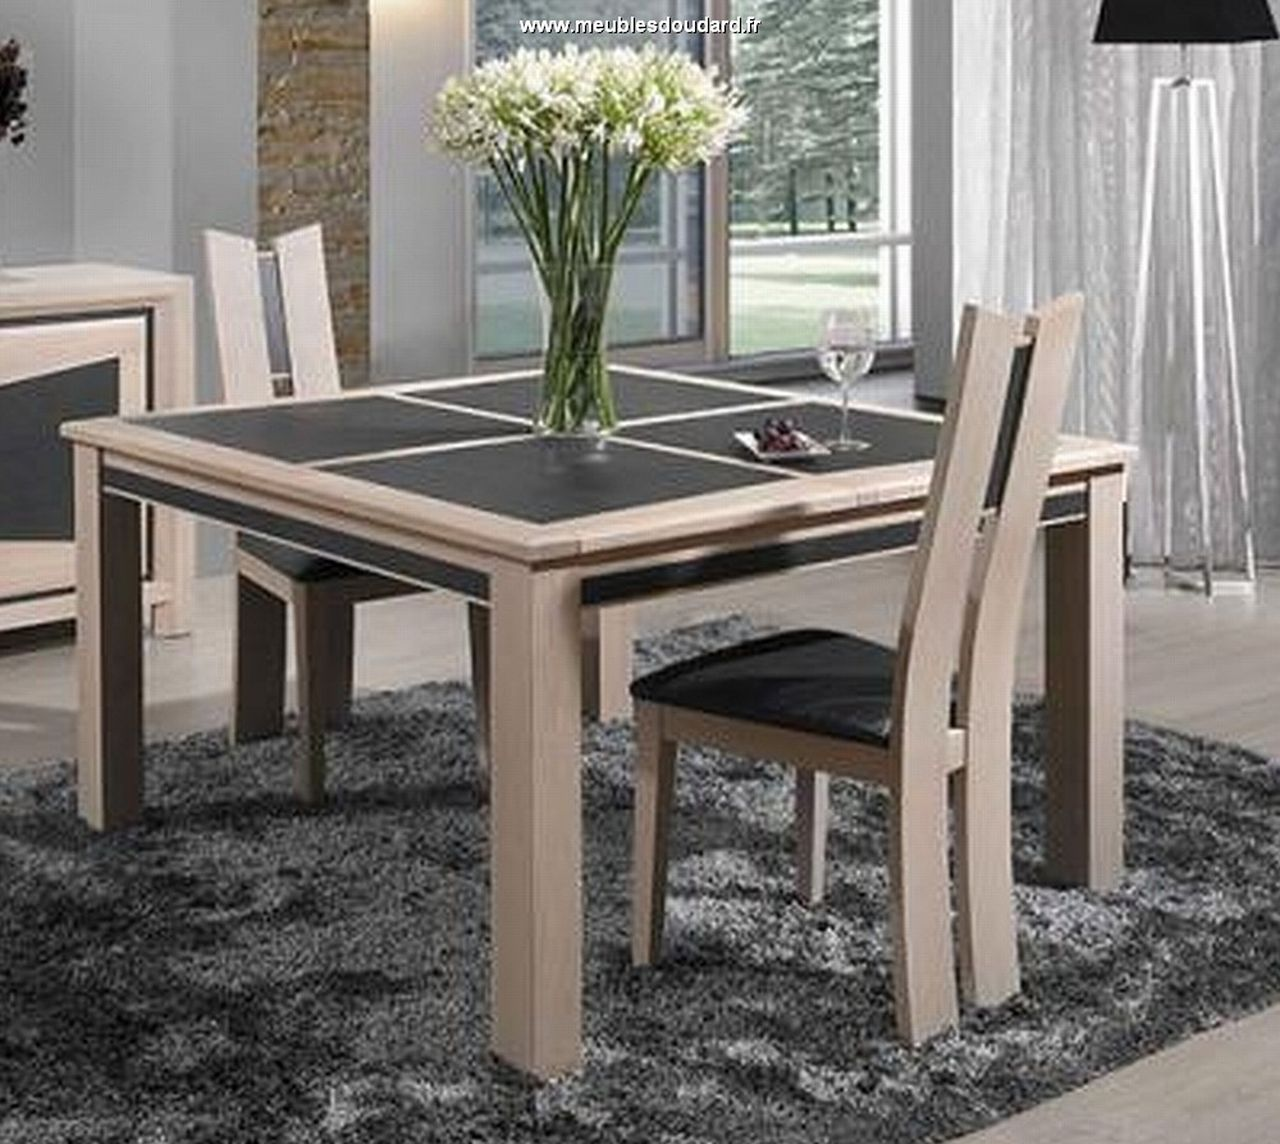 Table carr e dessus c ramique - Table de jardin carree extensible ...